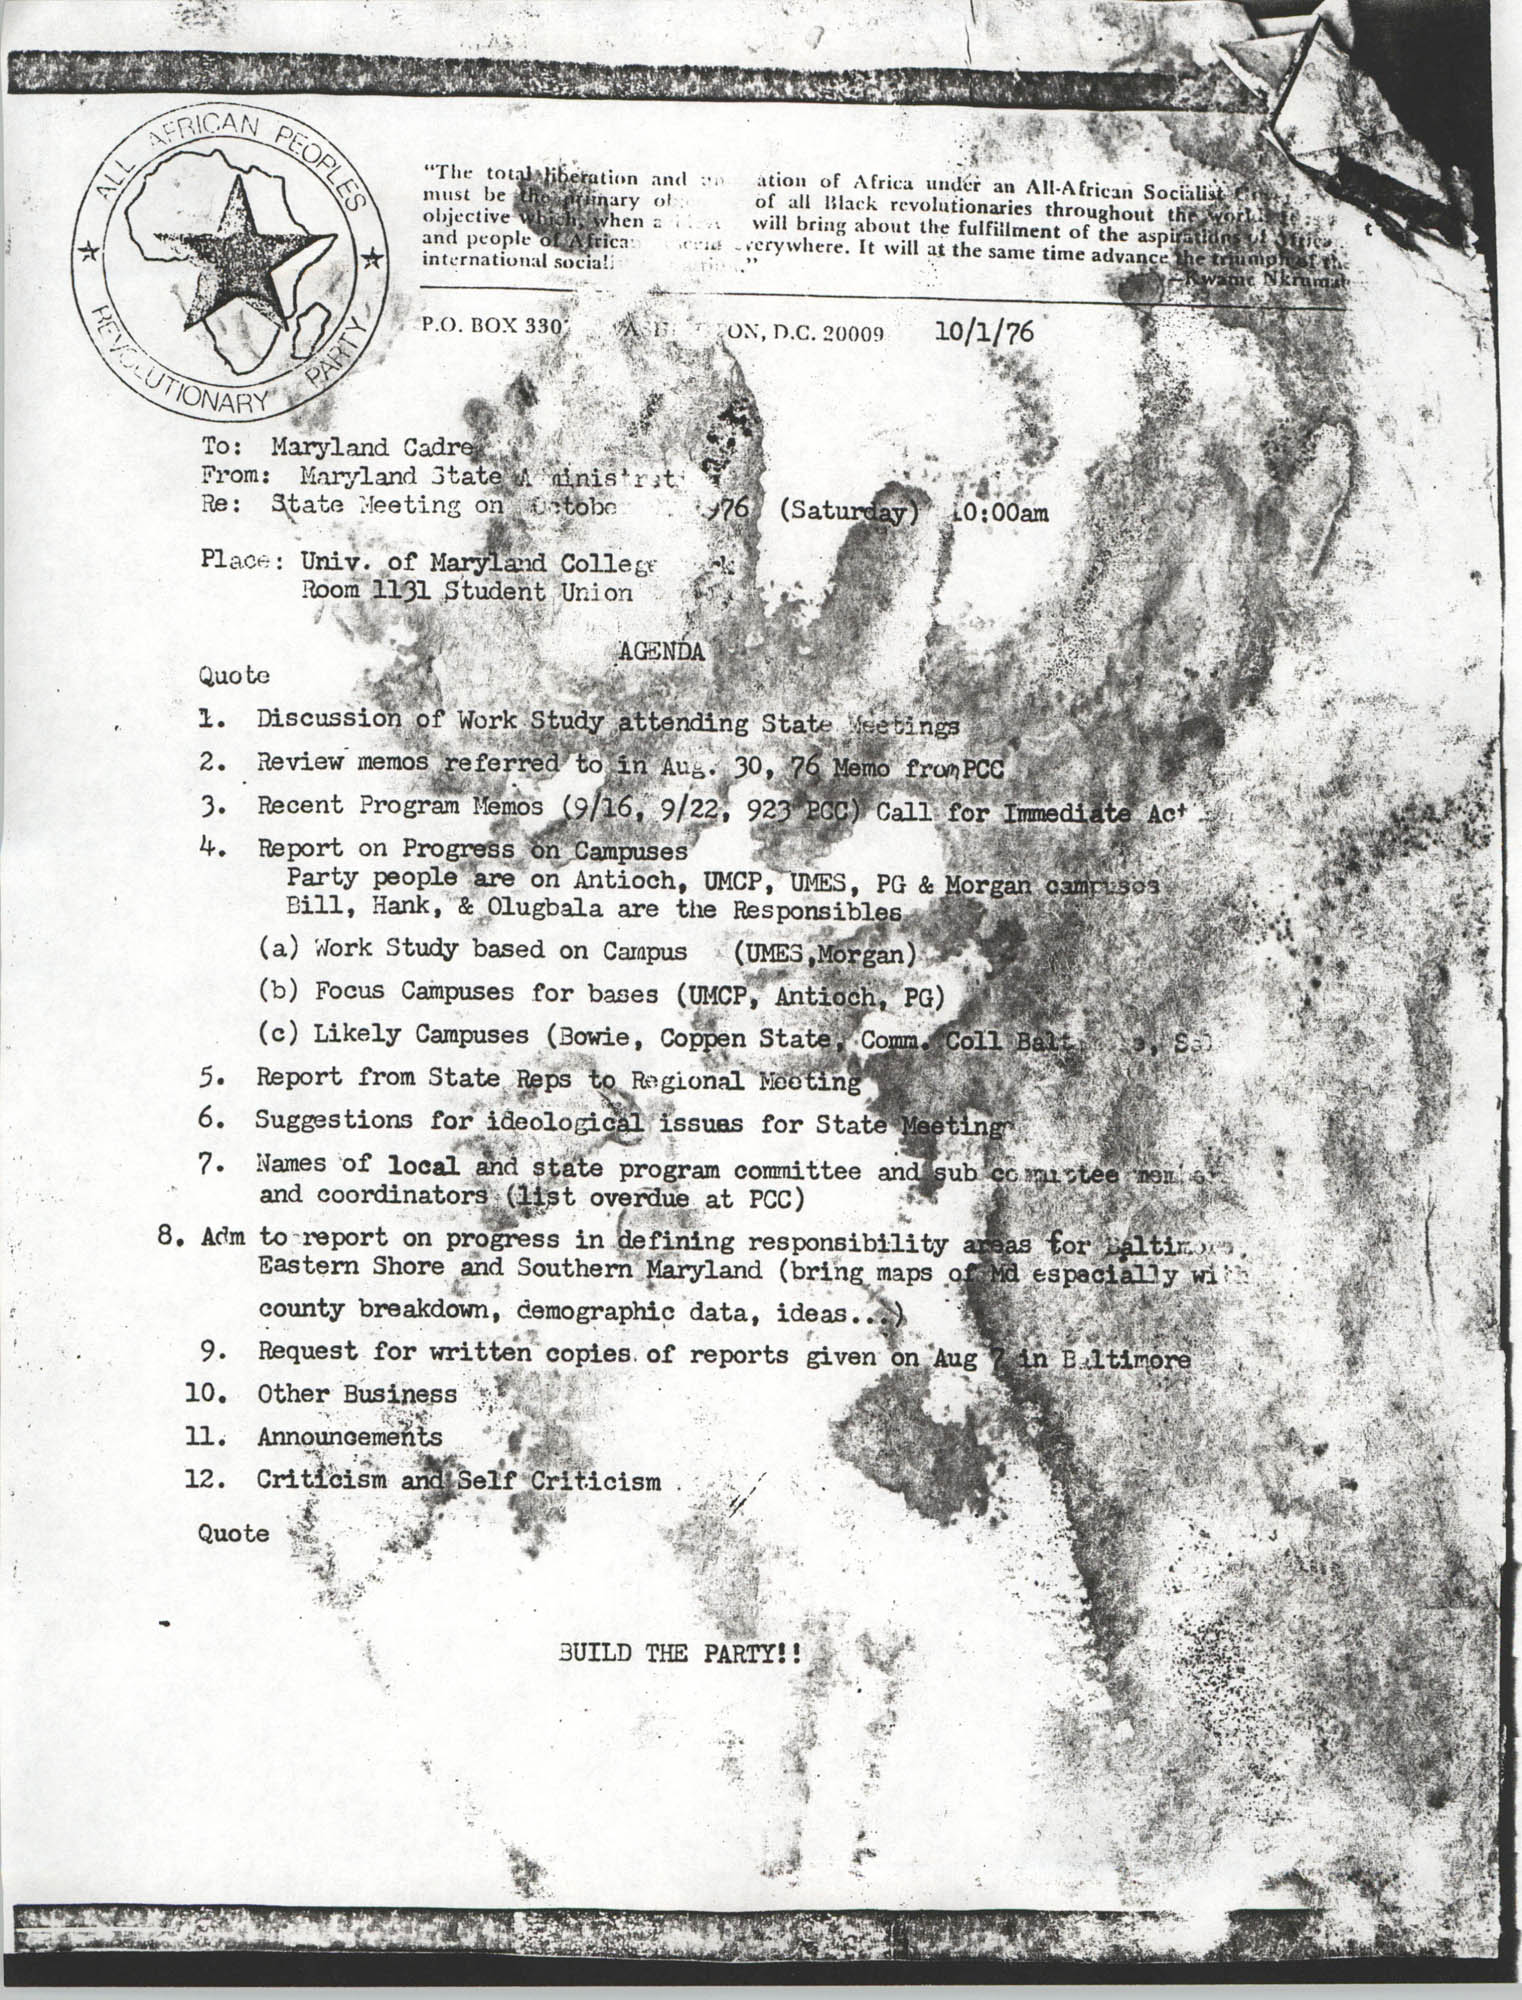 All African People's Revolutionary Party Memorandum, October 1, 1976